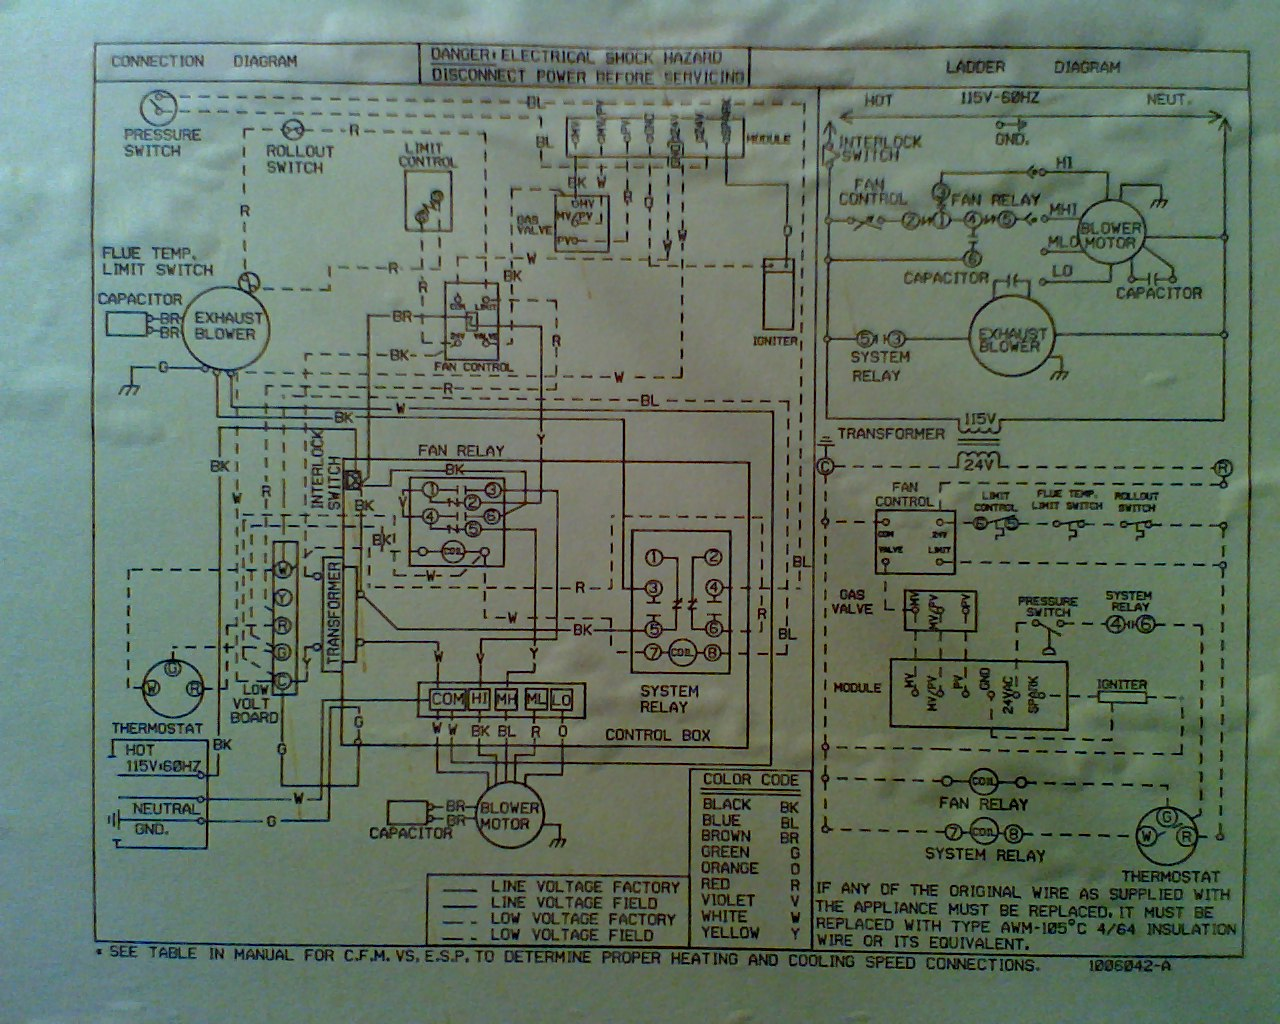 2009 11 20_231603_1120091711a air conditioner y wire grihon com ac, coolers & devices tempstar 2200 air conditioner wiring diagram at panicattacktreatment.co